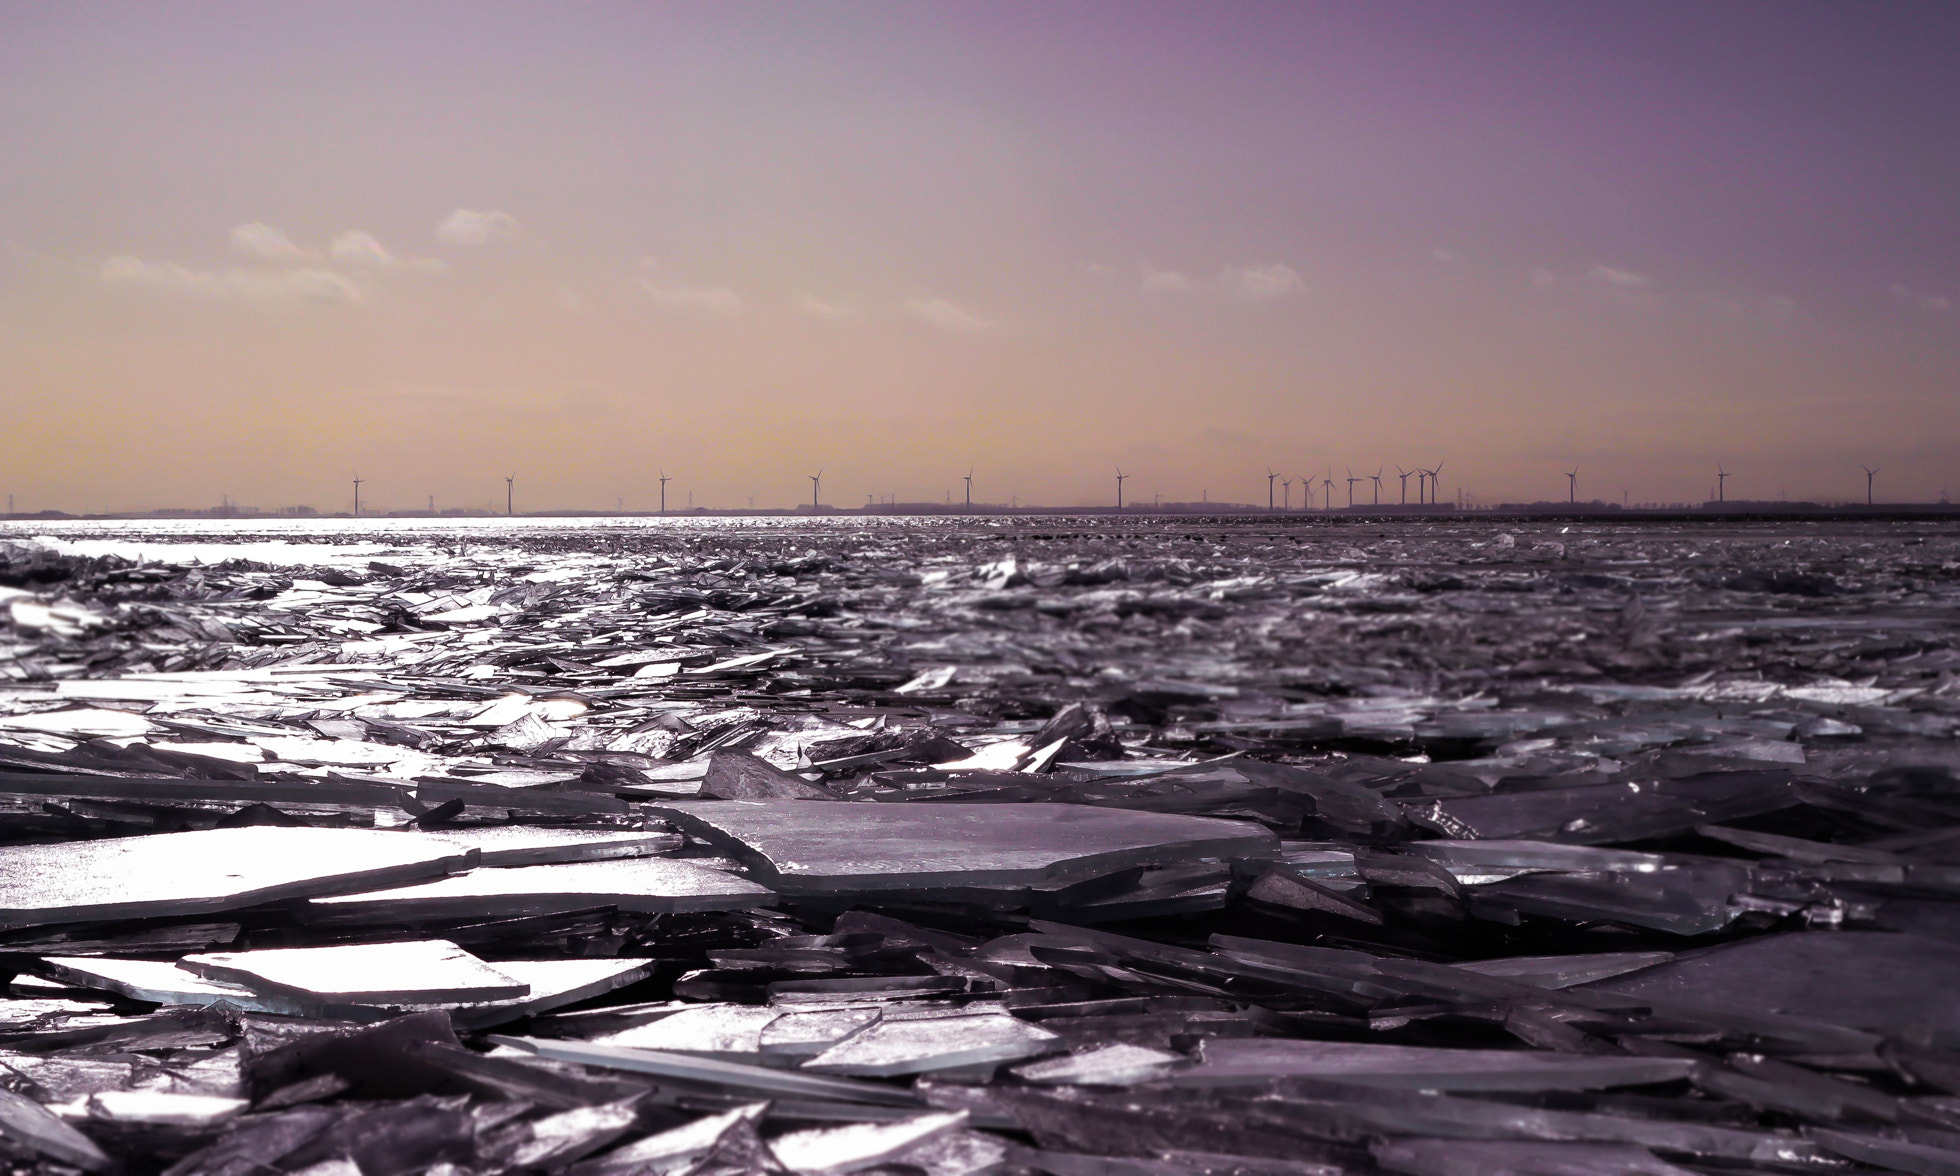 Photograph Drifting Ice in Holland by Nathalie  on 500px